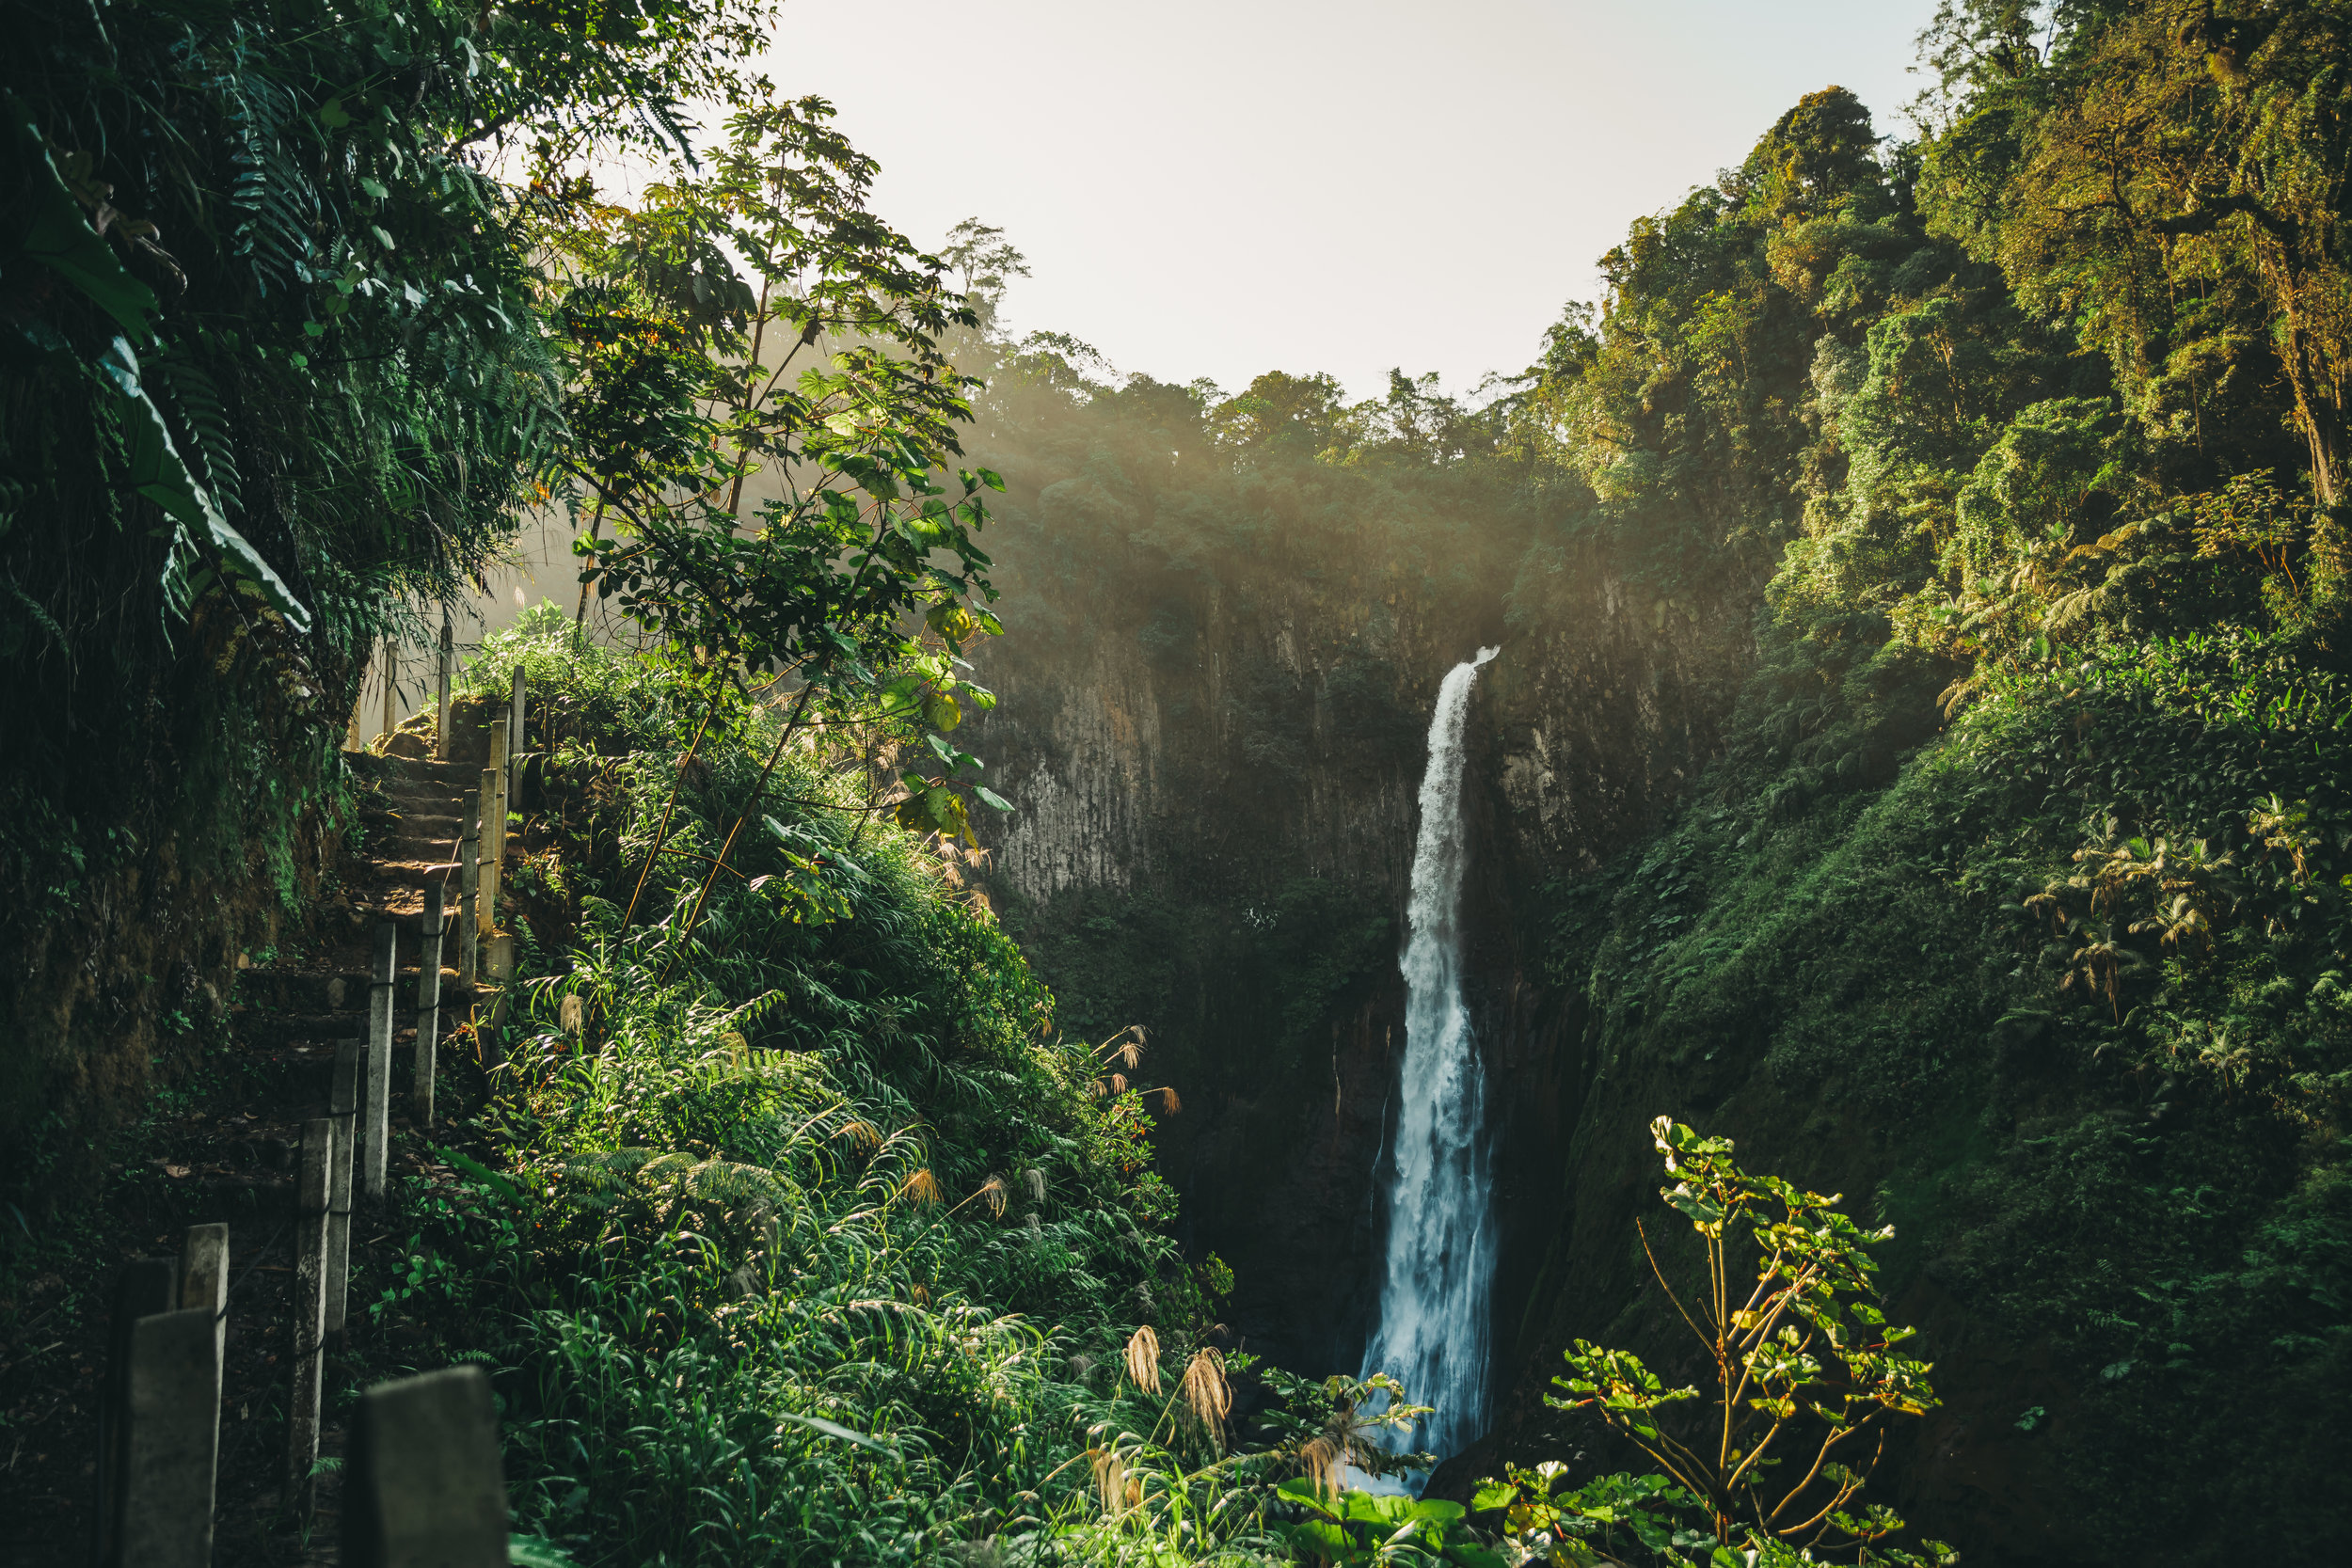 Costa Rica - A month-long solo trip around the west coast of Costa Rica